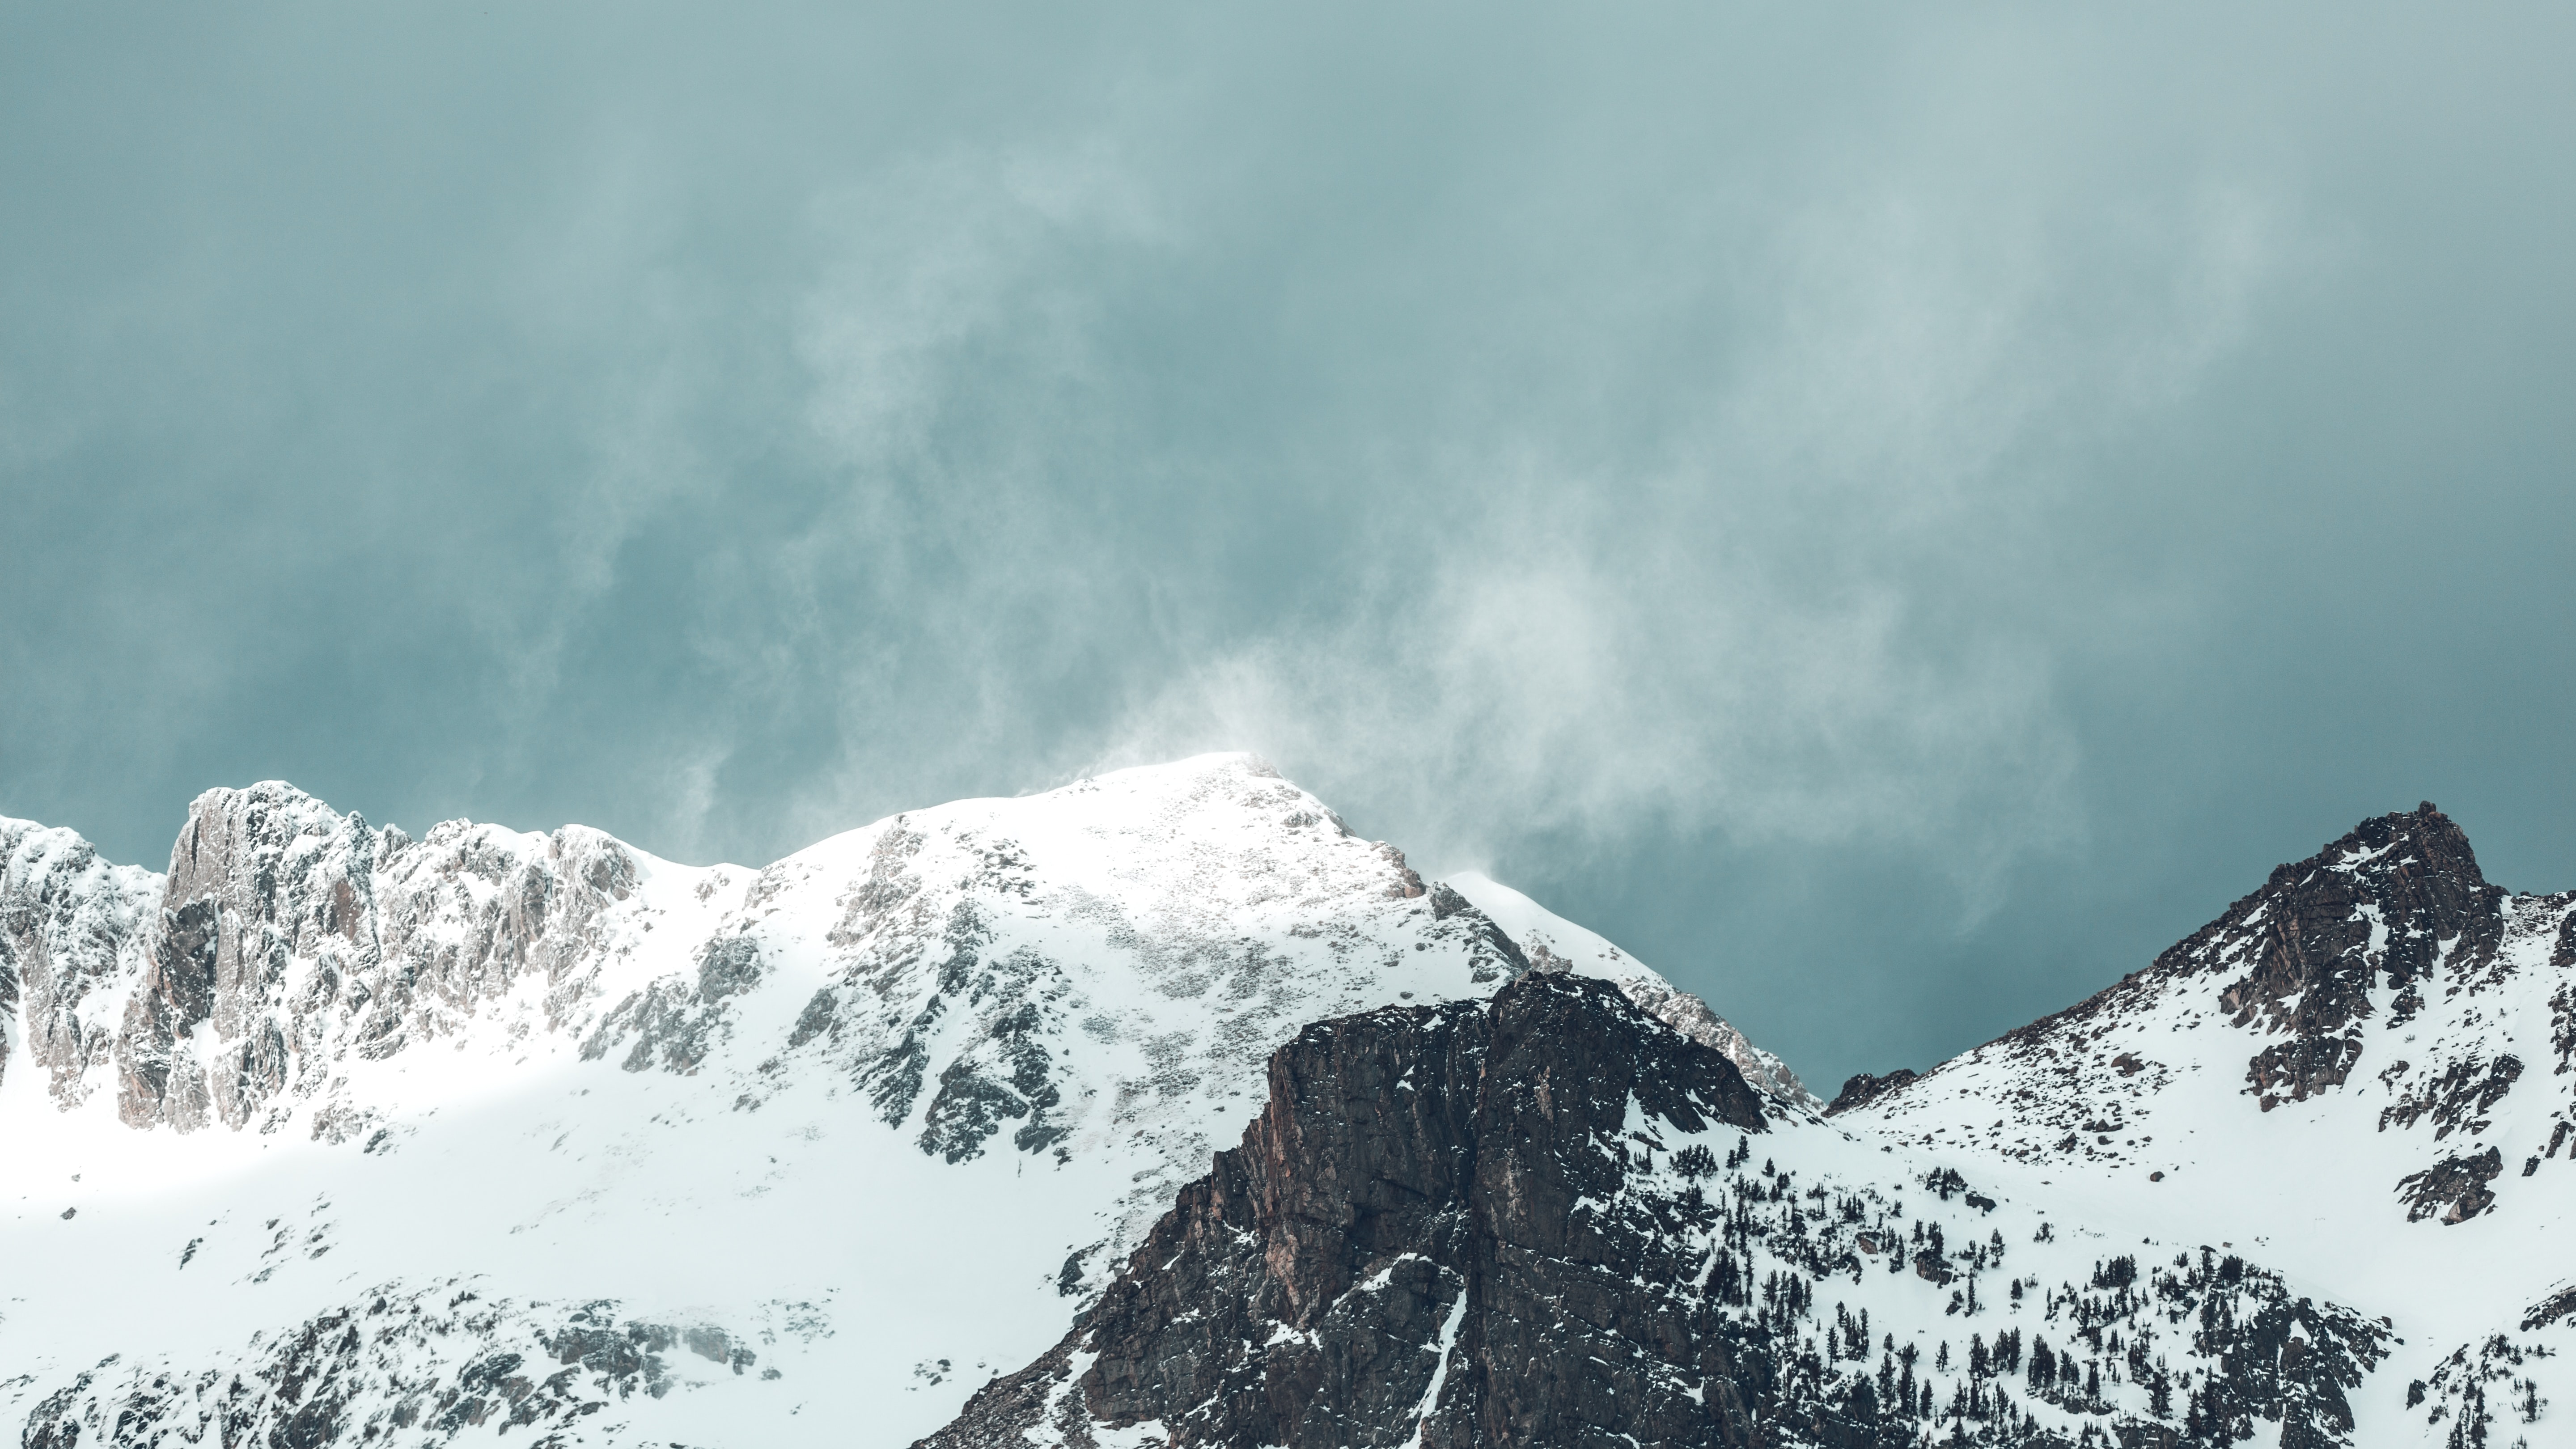 gray mountain covered with snow